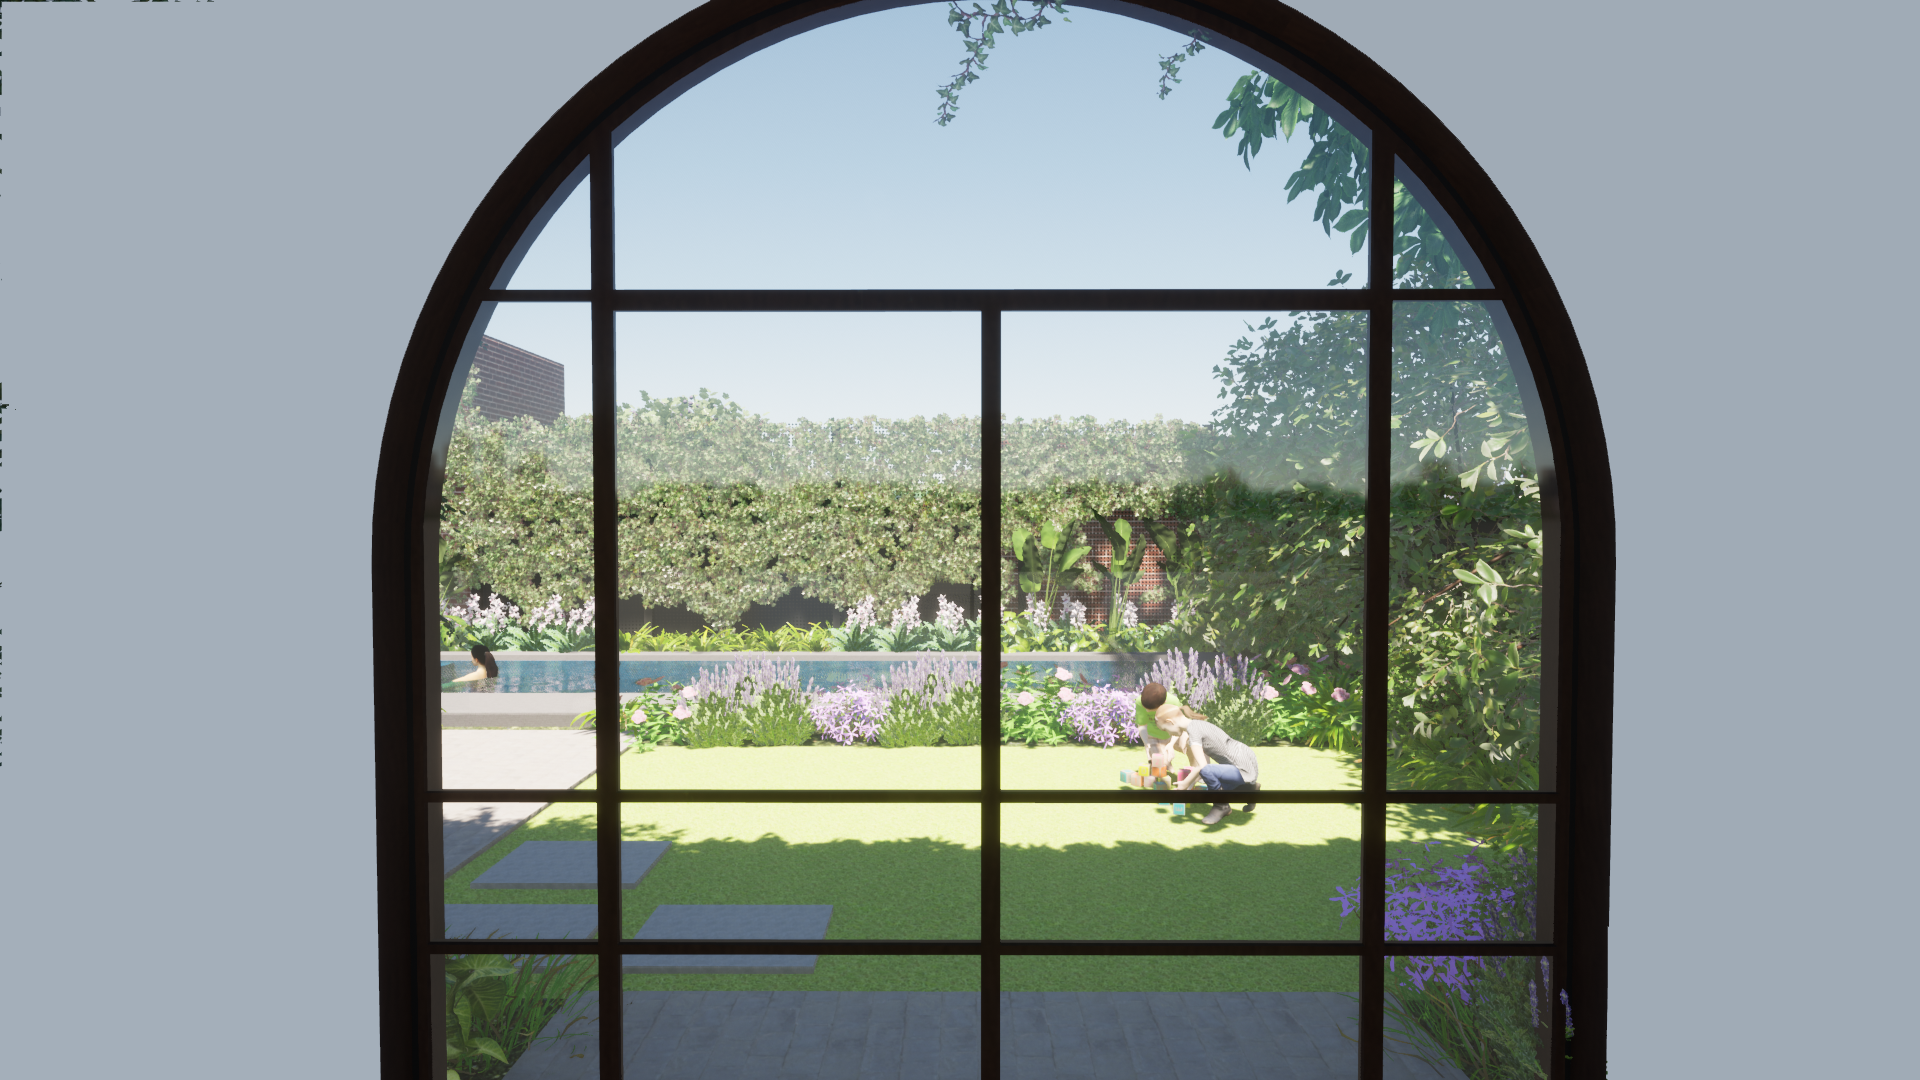 Pool and Landscape viewed through the window of the home.